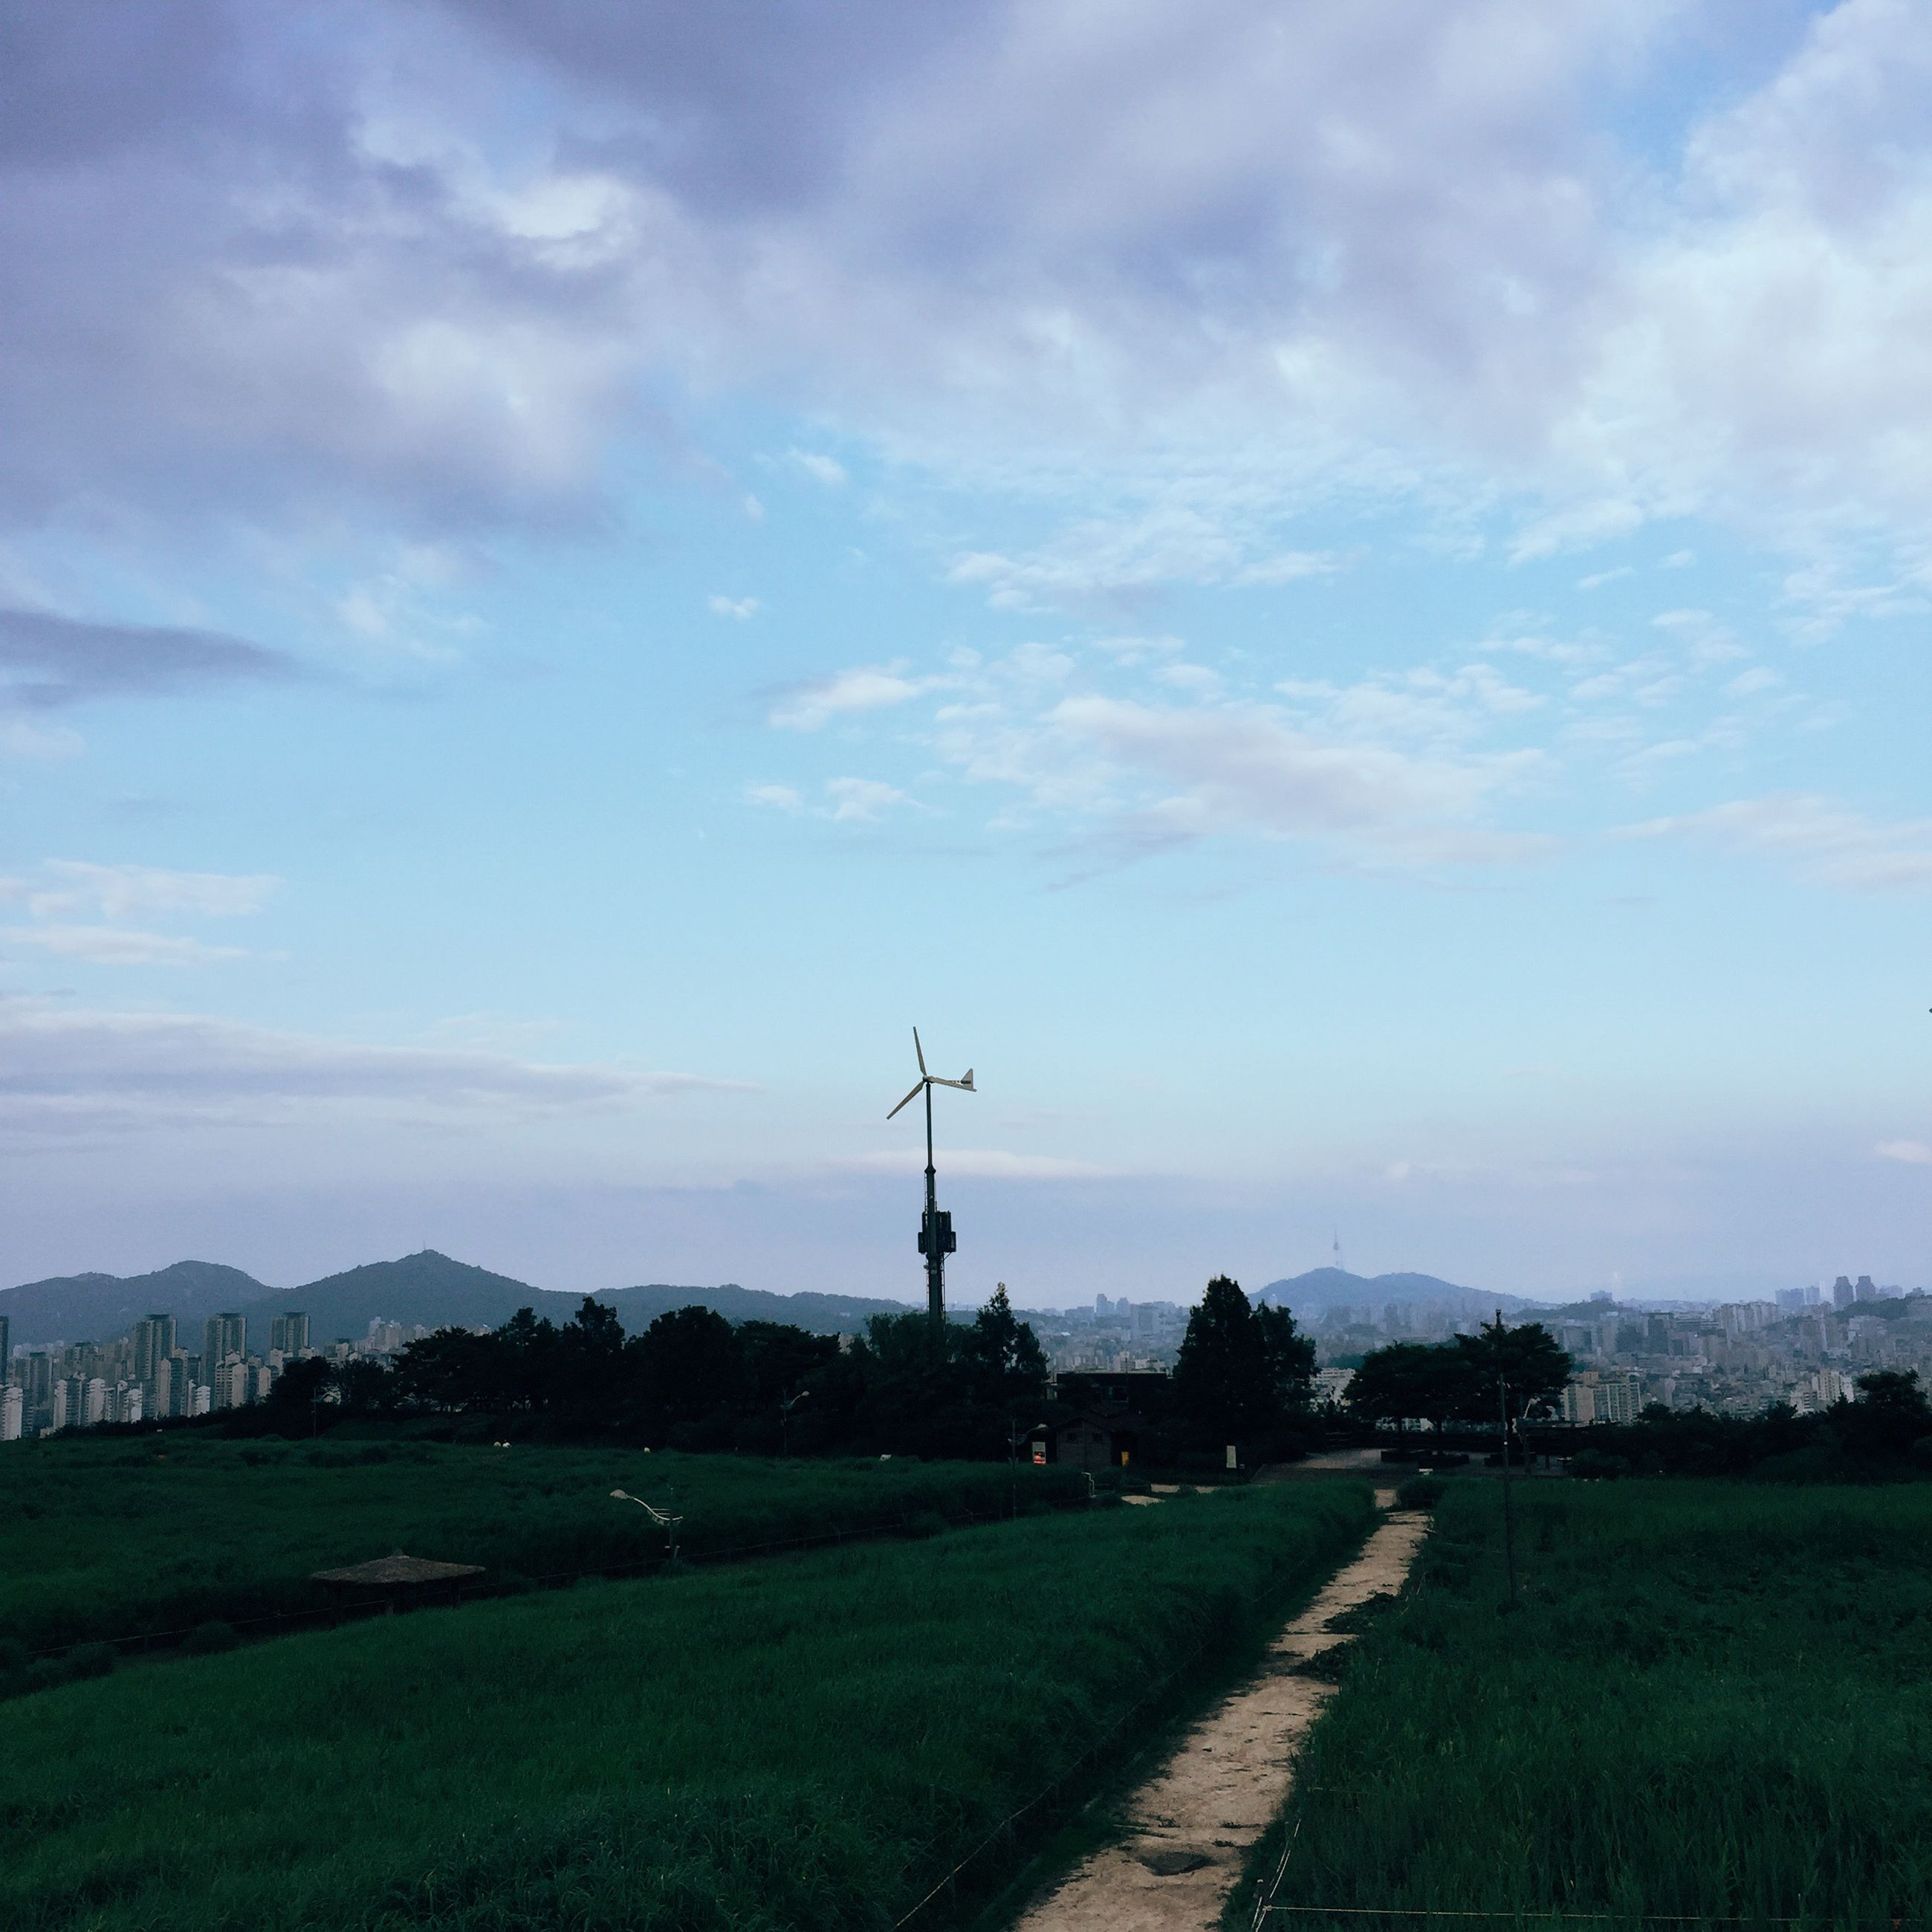 sky, field, landscape, wind power, wind turbine, alternative energy, cloud - sky, grass, built structure, windmill, fuel and power generation, building exterior, renewable energy, environmental conservation, rural scene, architecture, cloudy, cloud, nature, traditional windmill